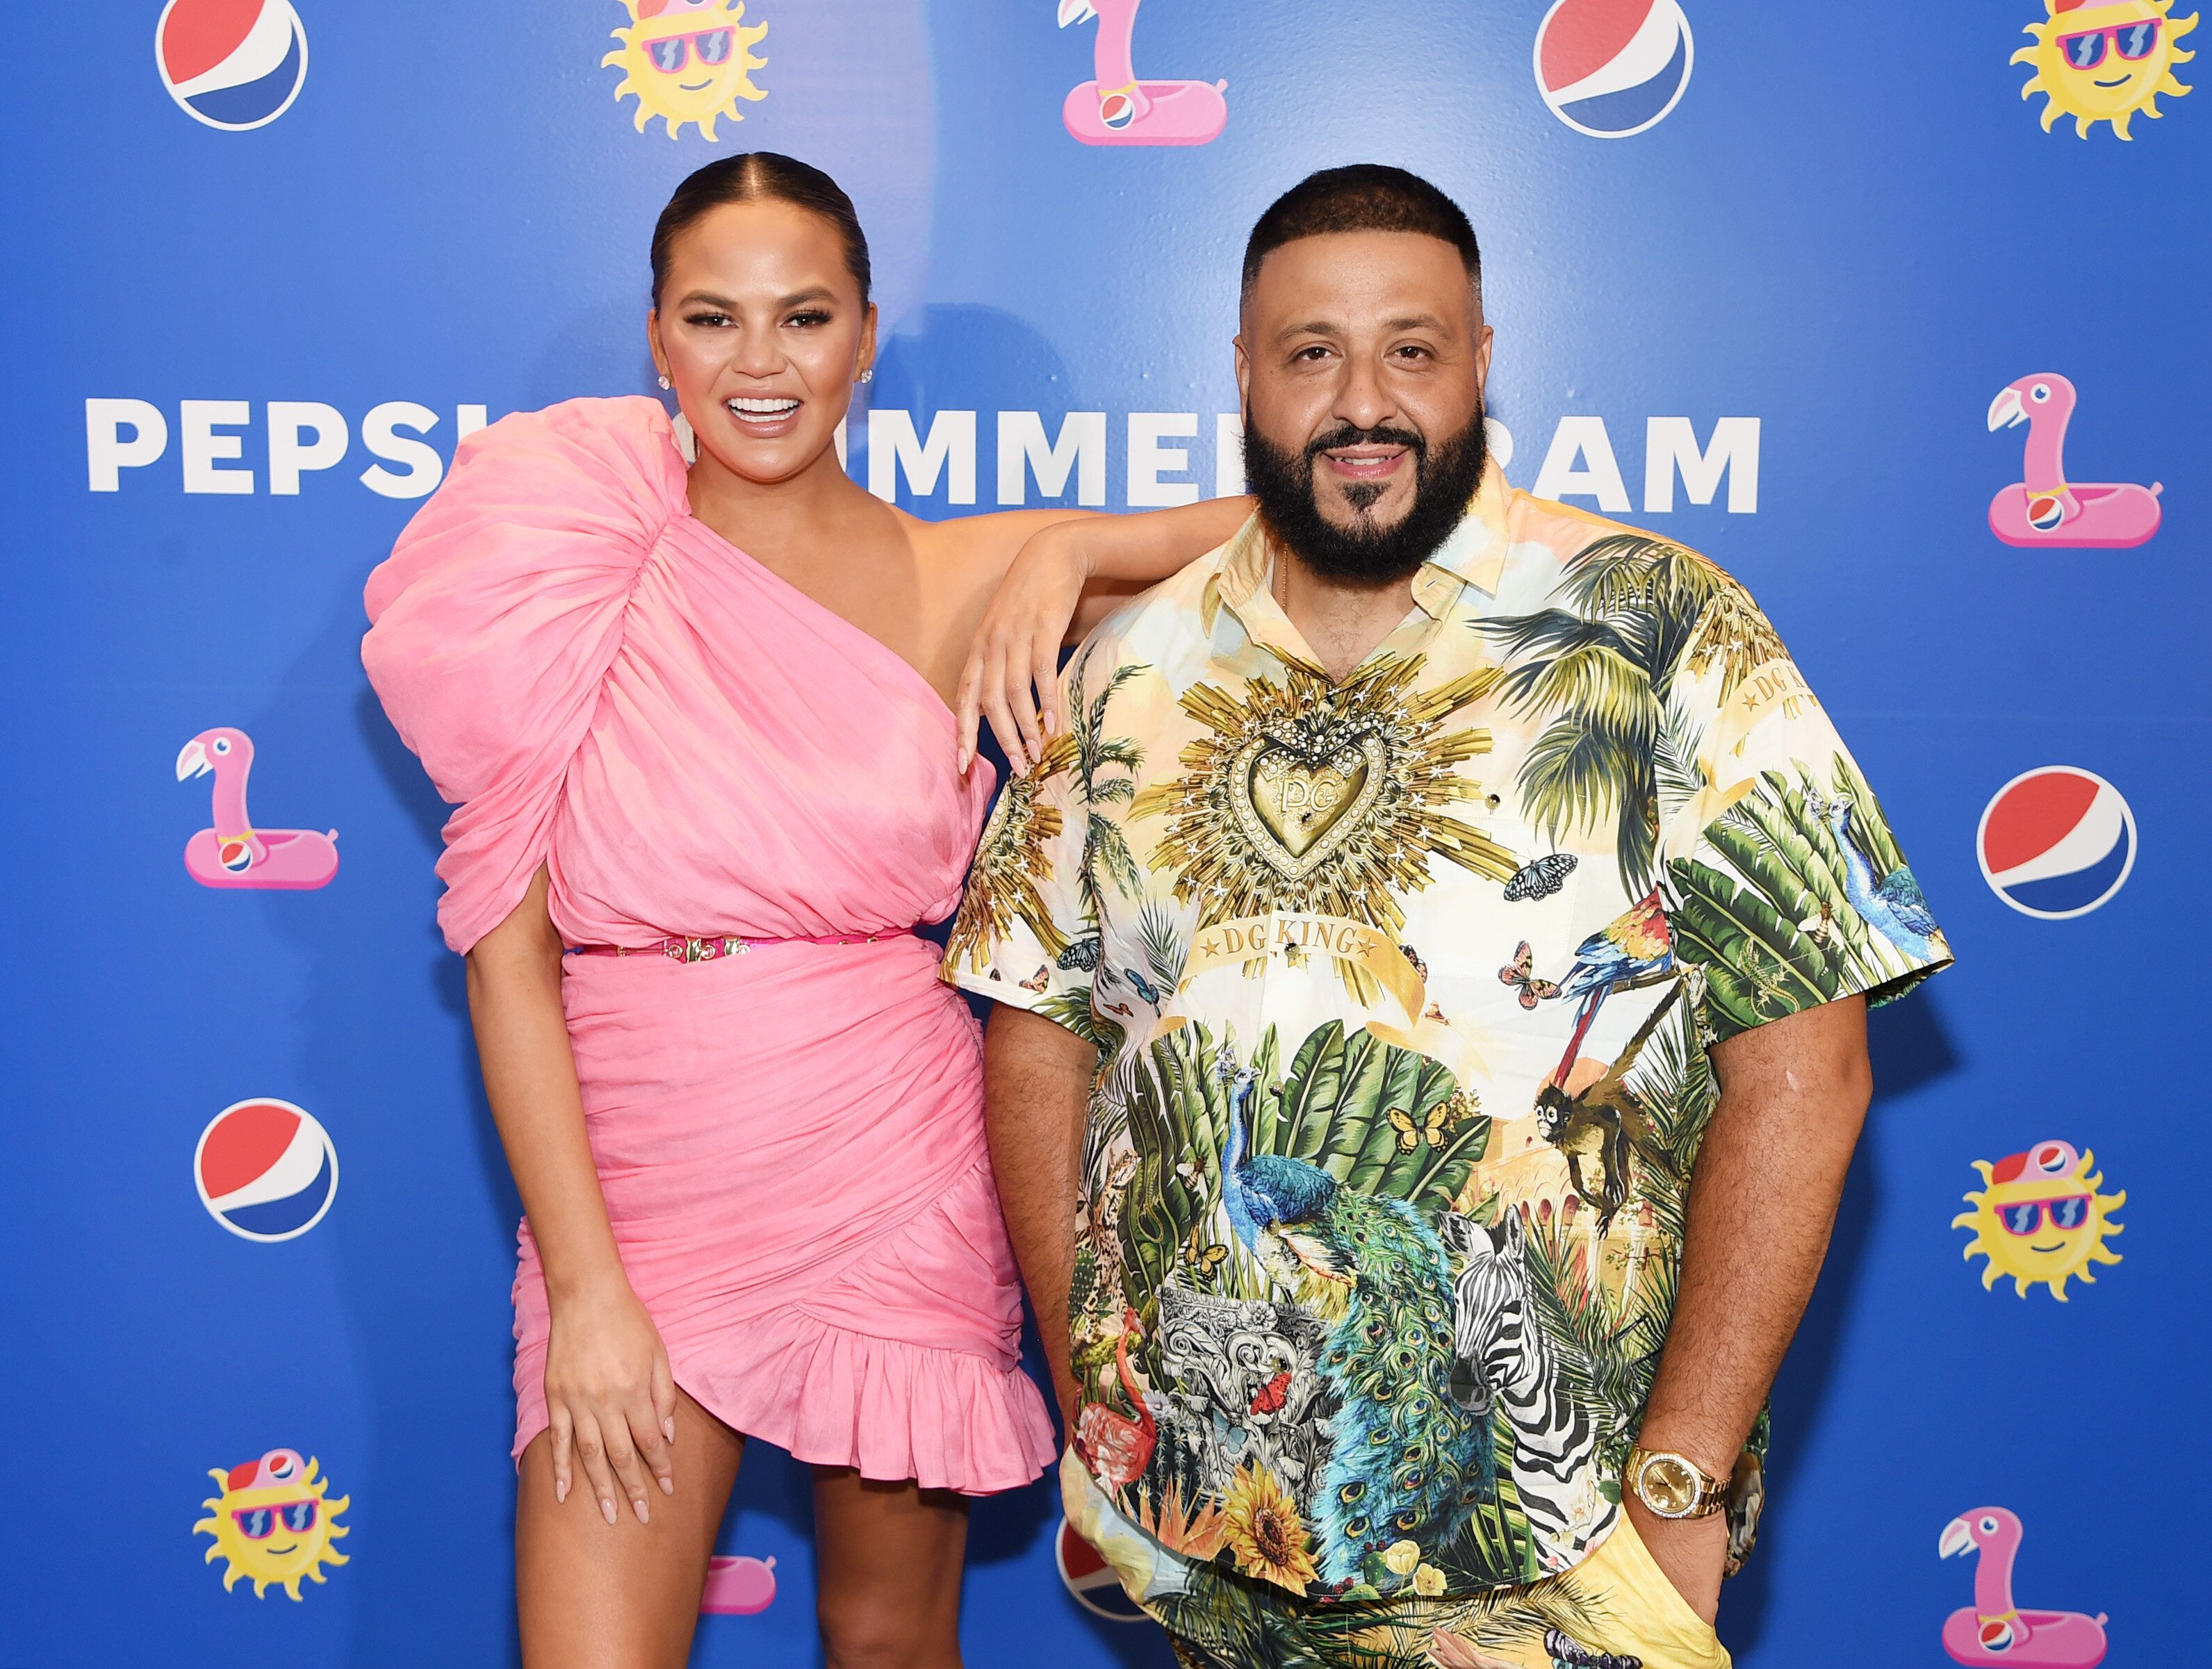 NEW YORK, NEW YORK - MAY 20: Chrissy Teigen and DJ Khaled host the Pepsi #Summergram Celebration featuring DJ set by DJ Khaled at Pier 17 on May 20, 2019 in New York City. (Photo by Jamie McCarthy/WireImage for Pepsi)